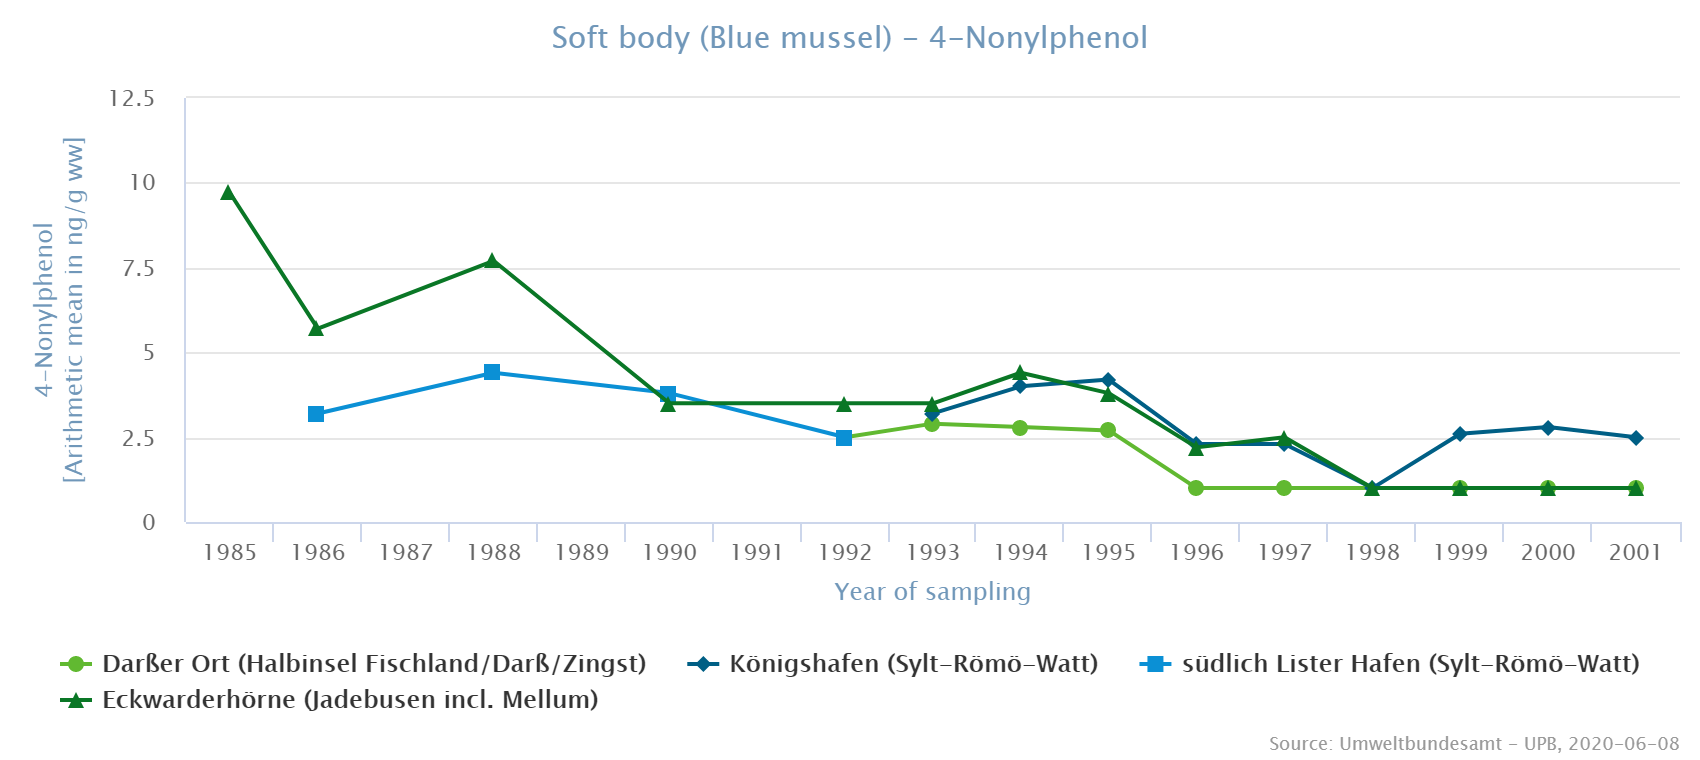 4-nonylphenol (4NP) in blue mussels from North Sea and Baltic Sea sampling sites